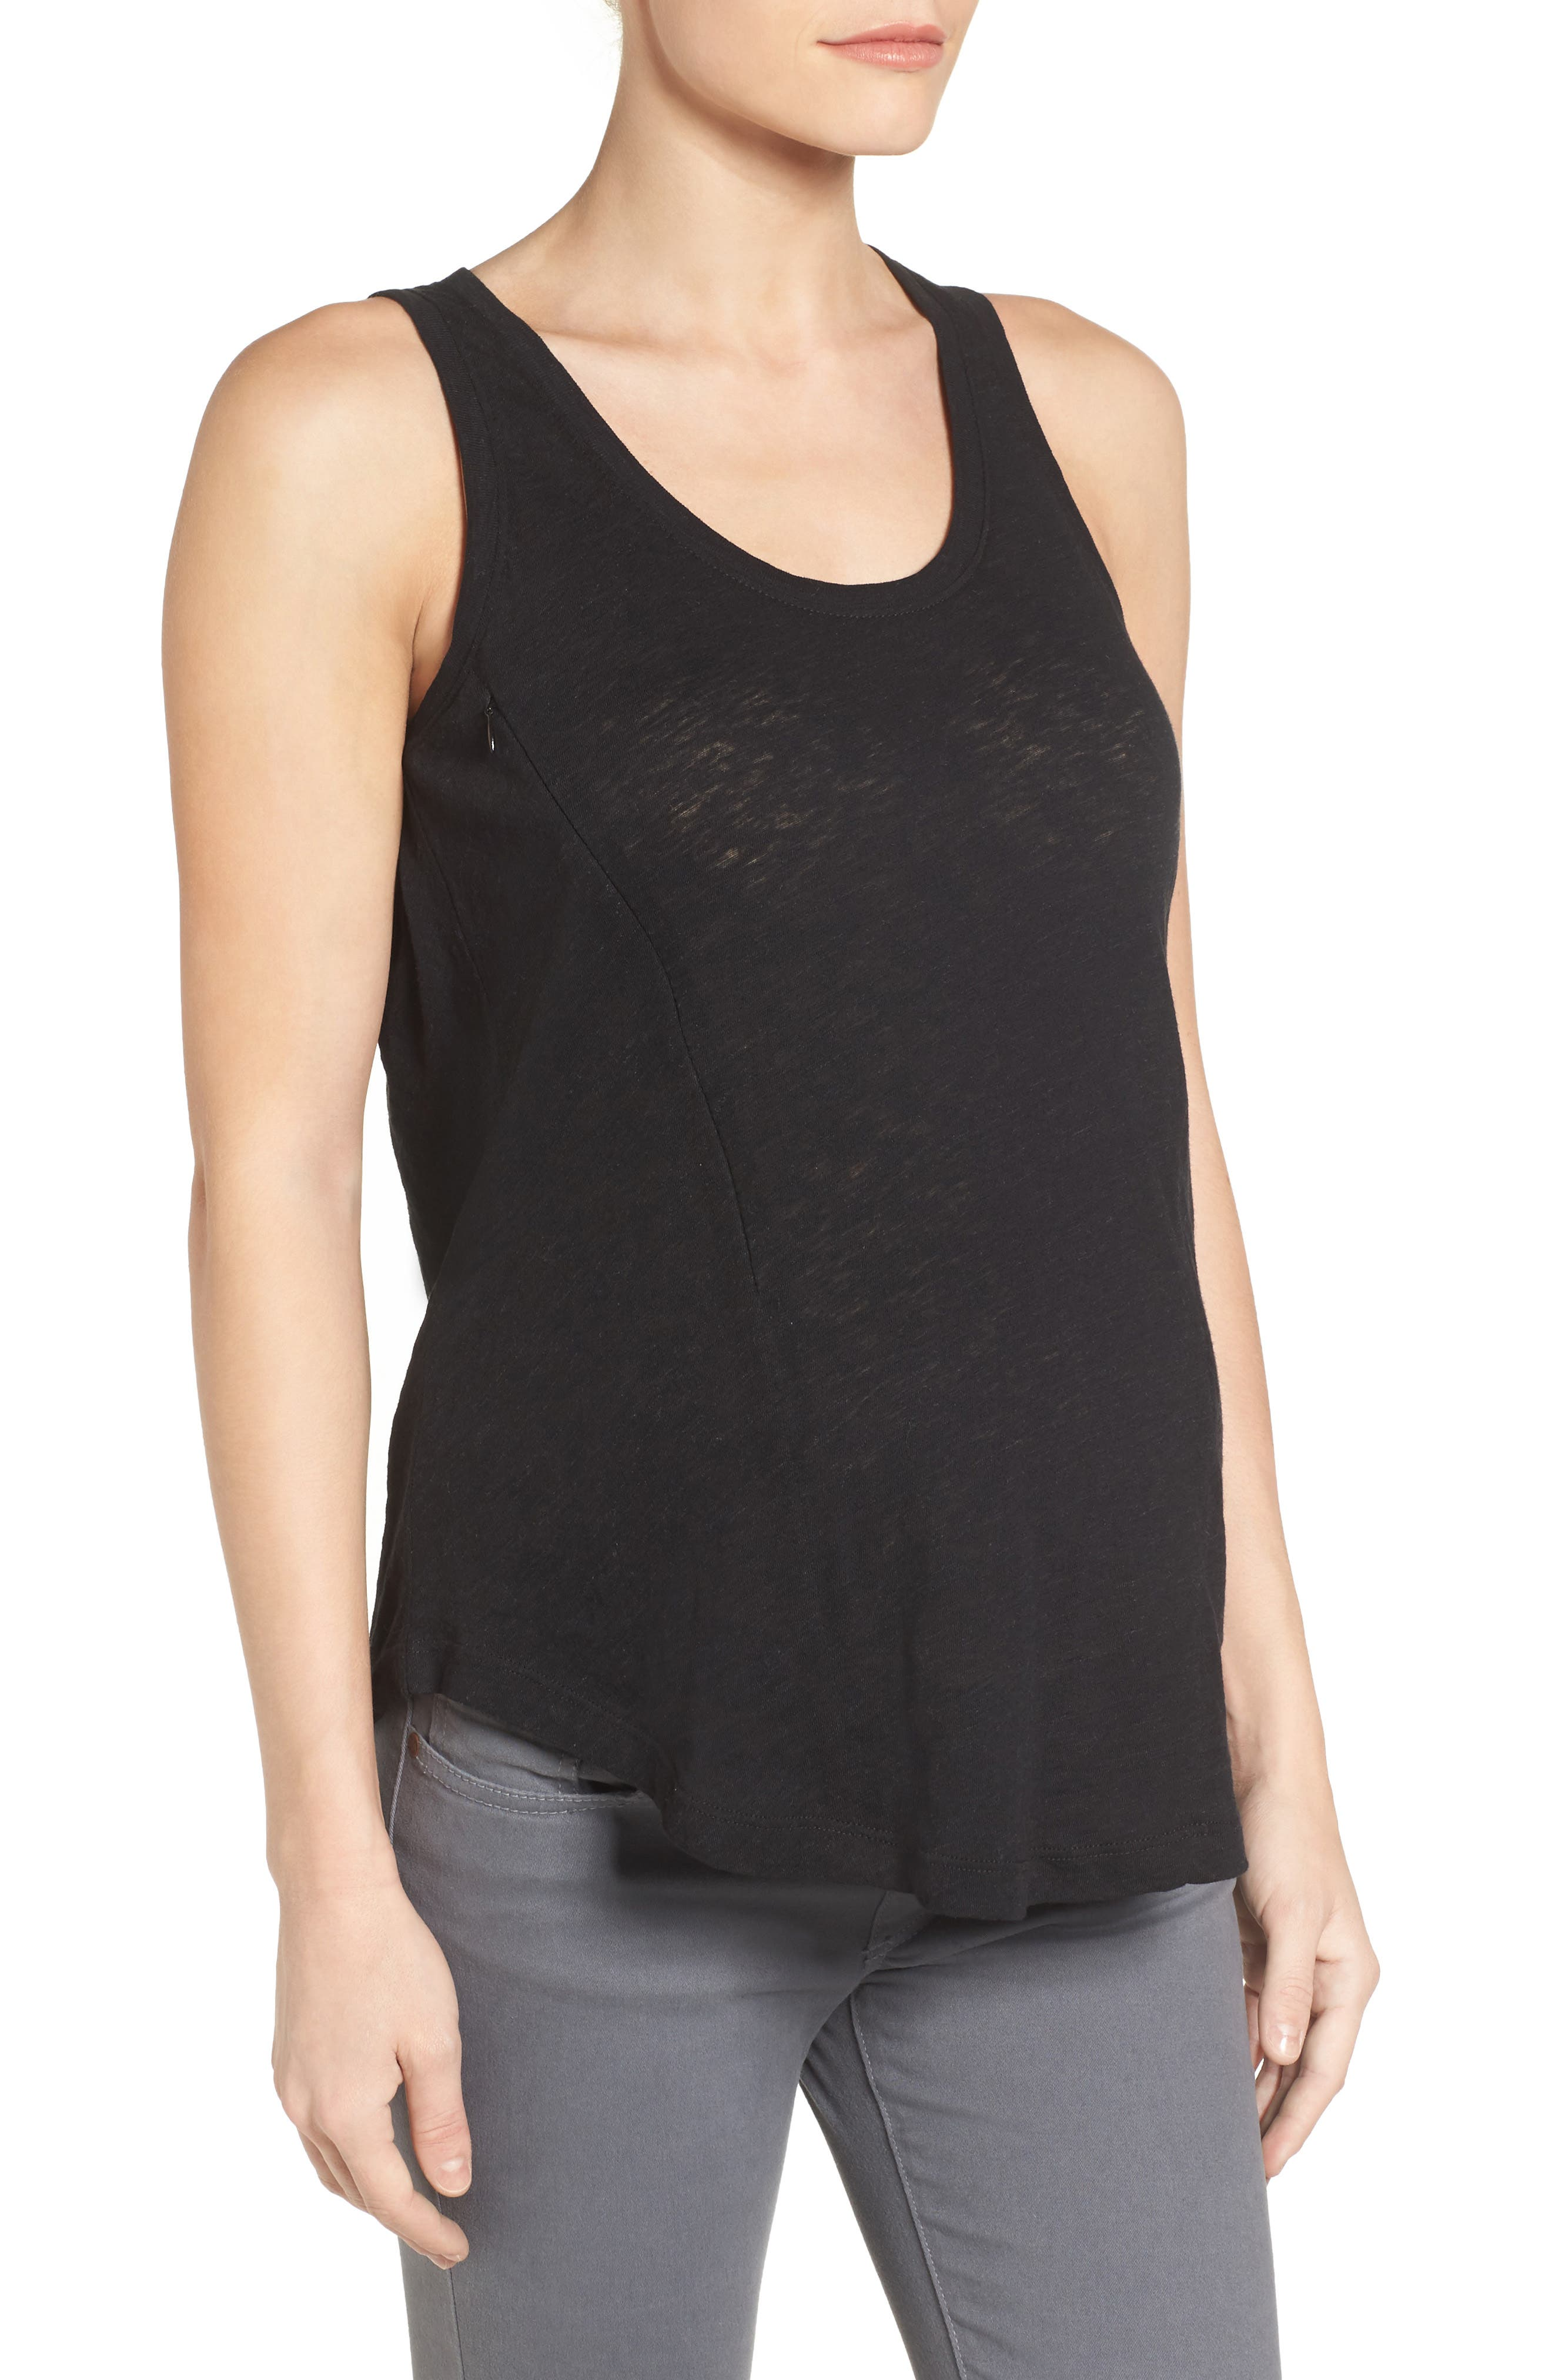 LOYAL HANA, Taylor Maternity/Nursing Tank Top, Alternate thumbnail 3, color, BLACK